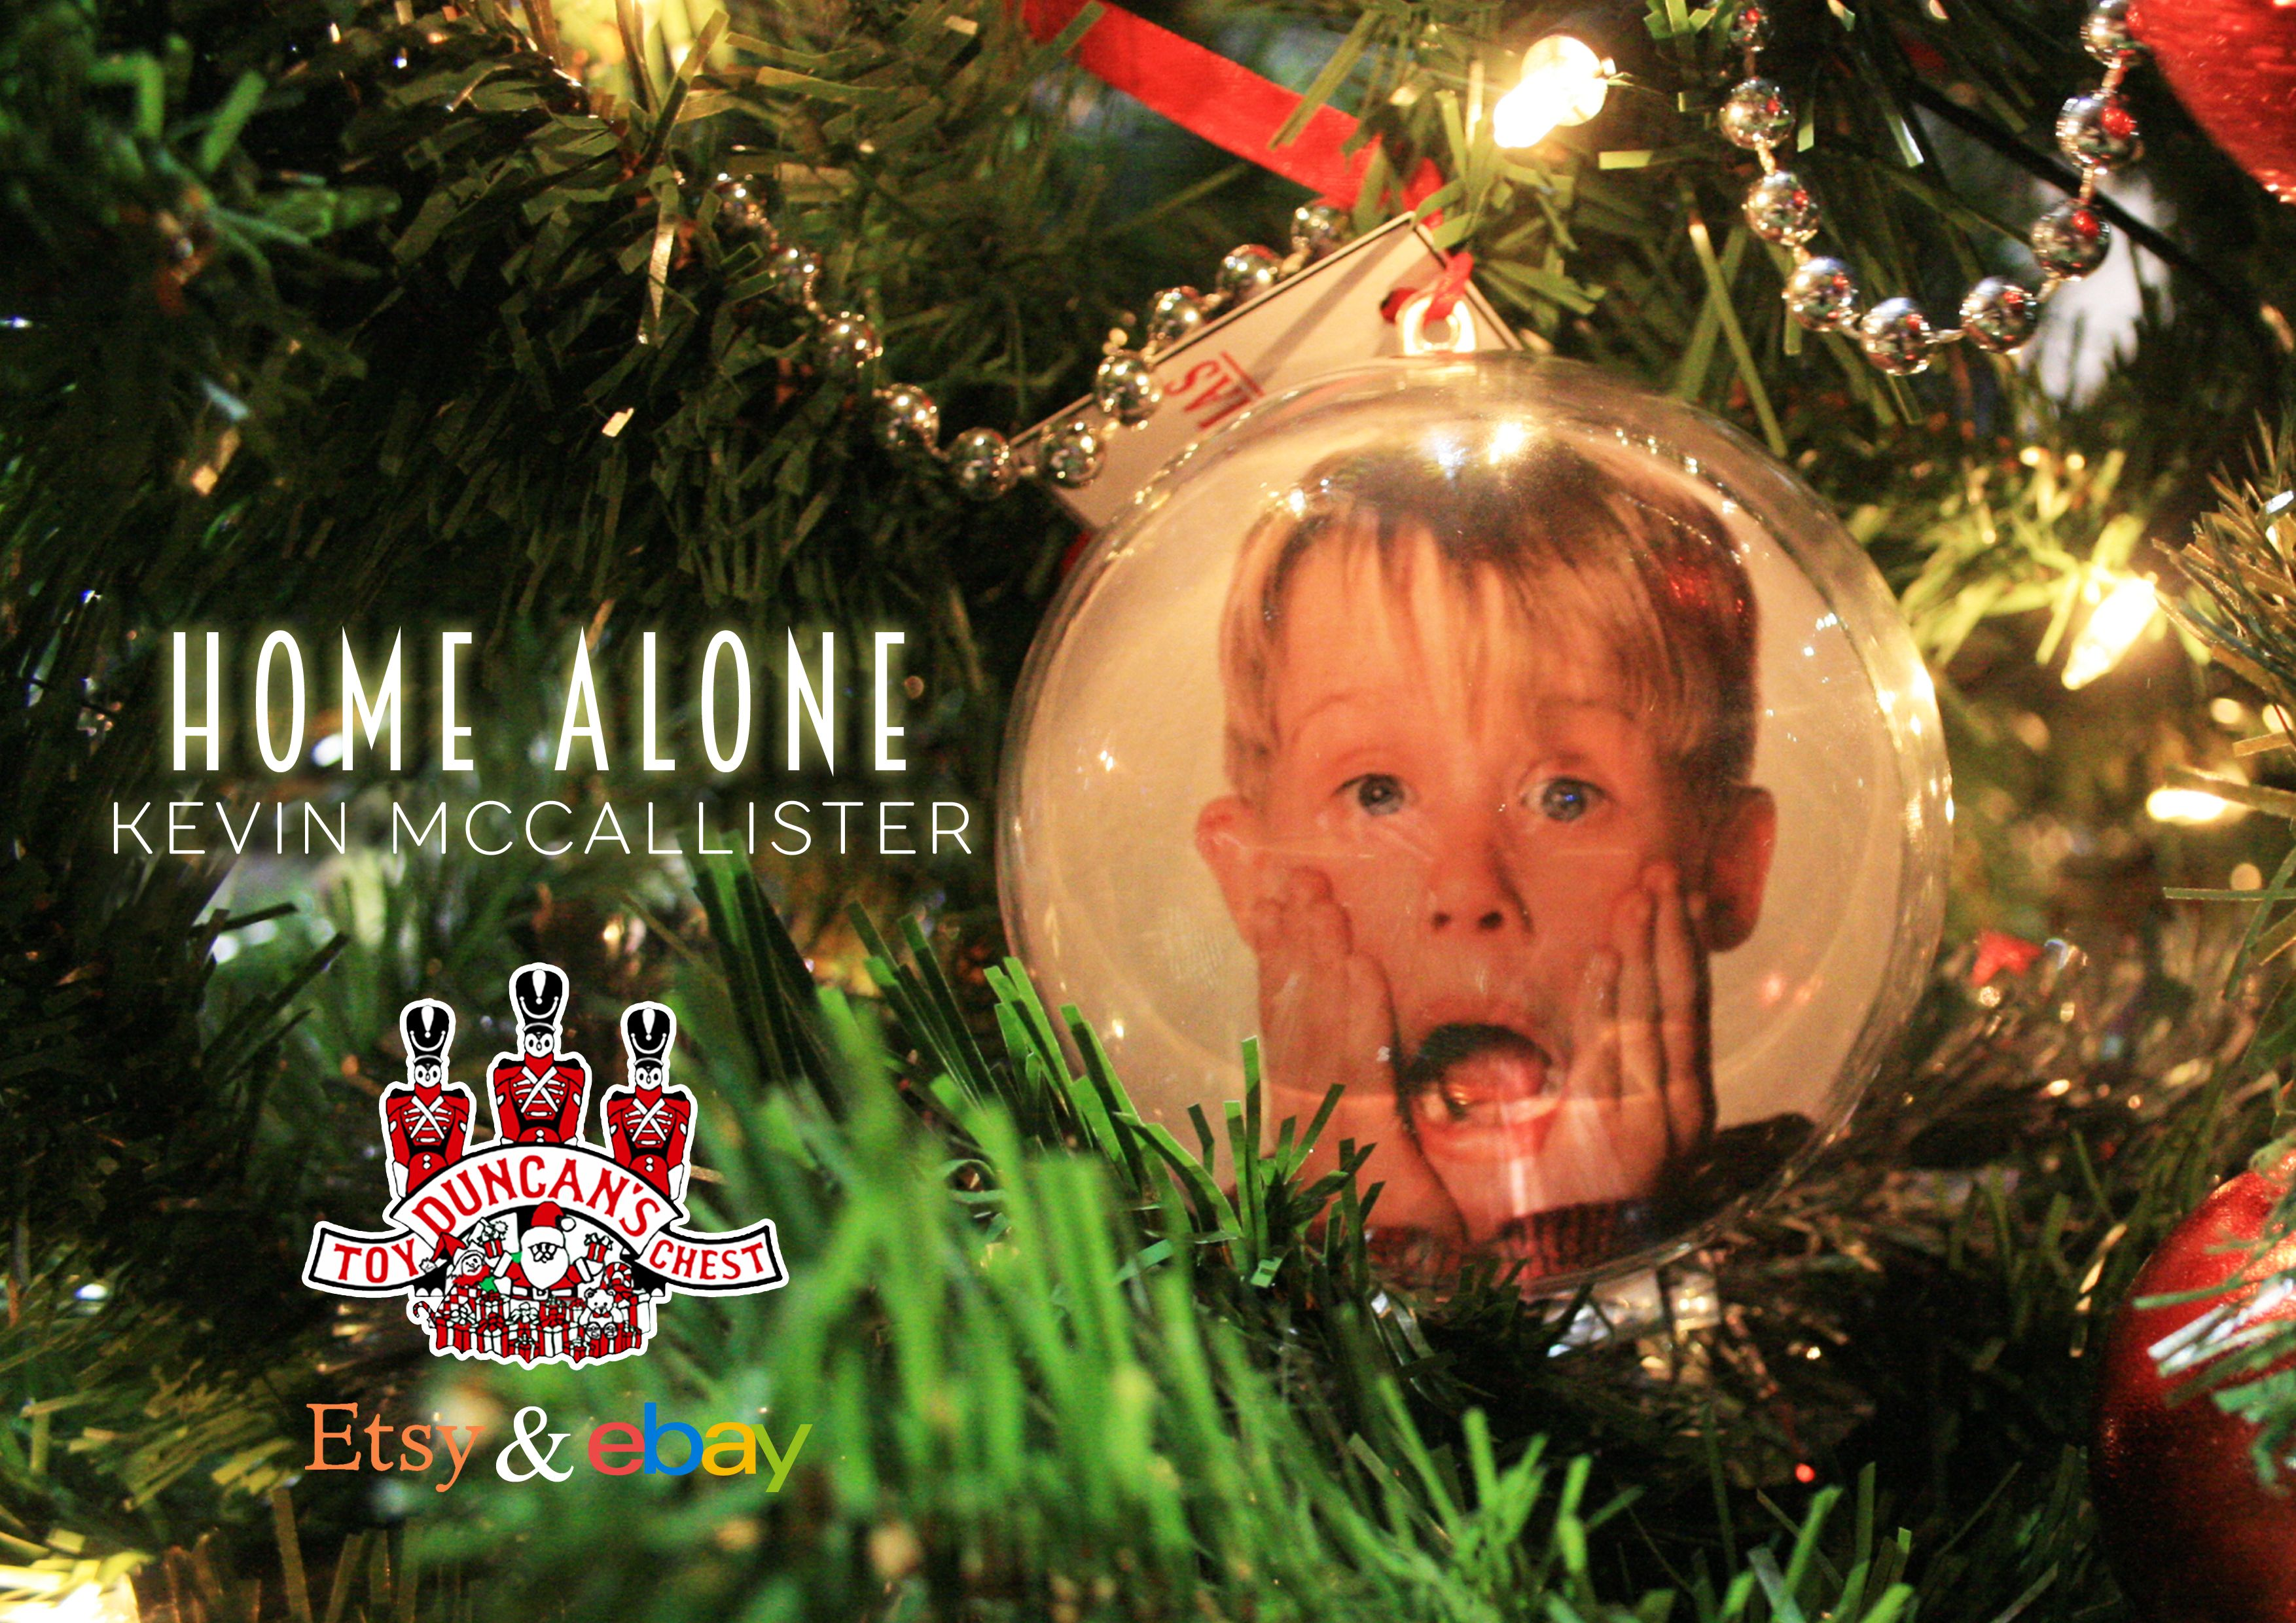 Home Alone Bauble Available At Https Www Etsy Com Uk Shop Duncanstoychest Christmas Tree Baubles Christmas Bulbs Christmas Ribbon